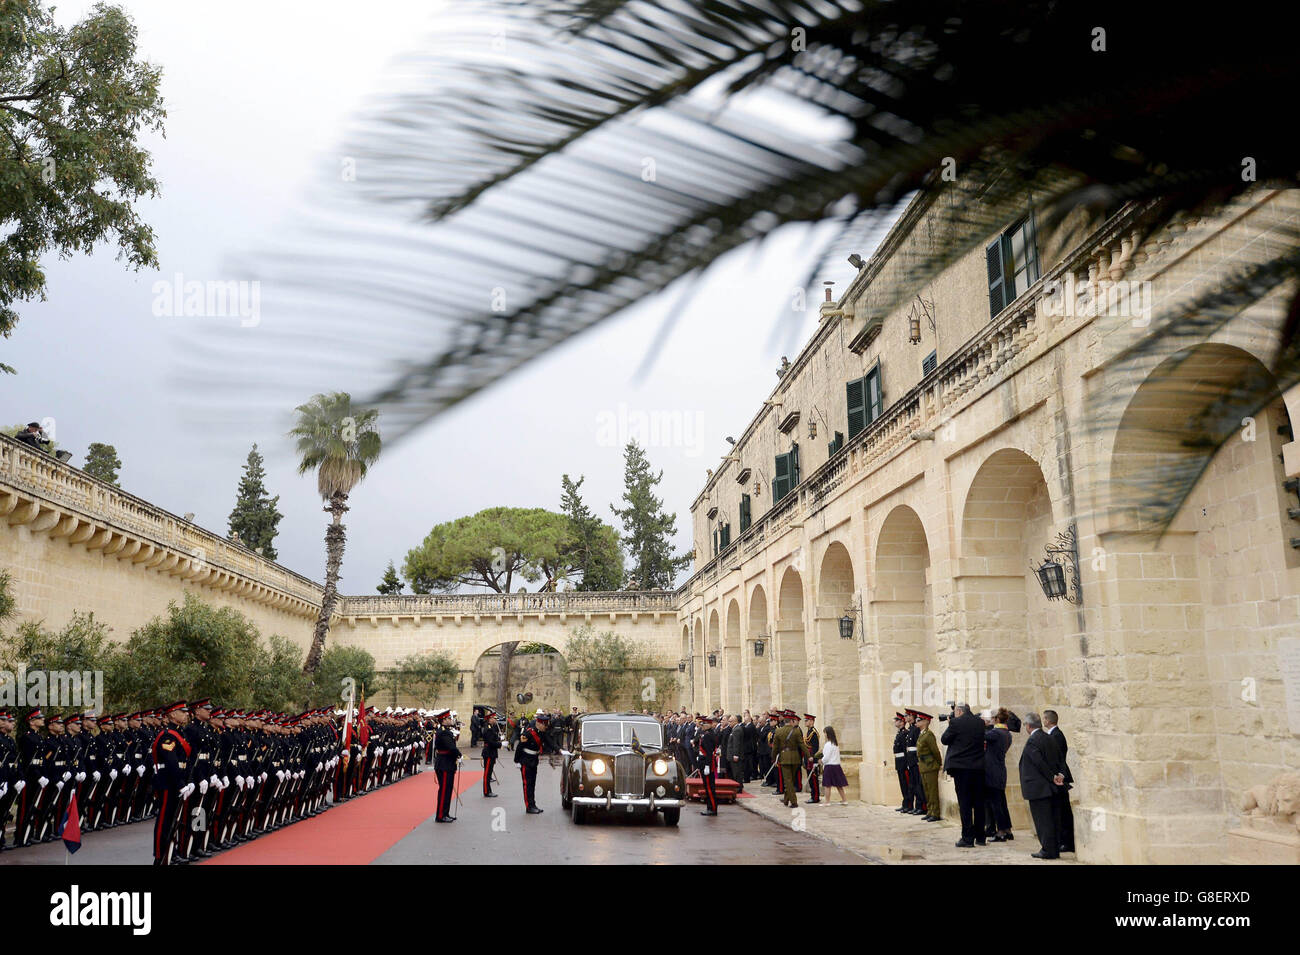 Commonwealth Heads of State Meeting - Malta - Day 1 - Stock Image